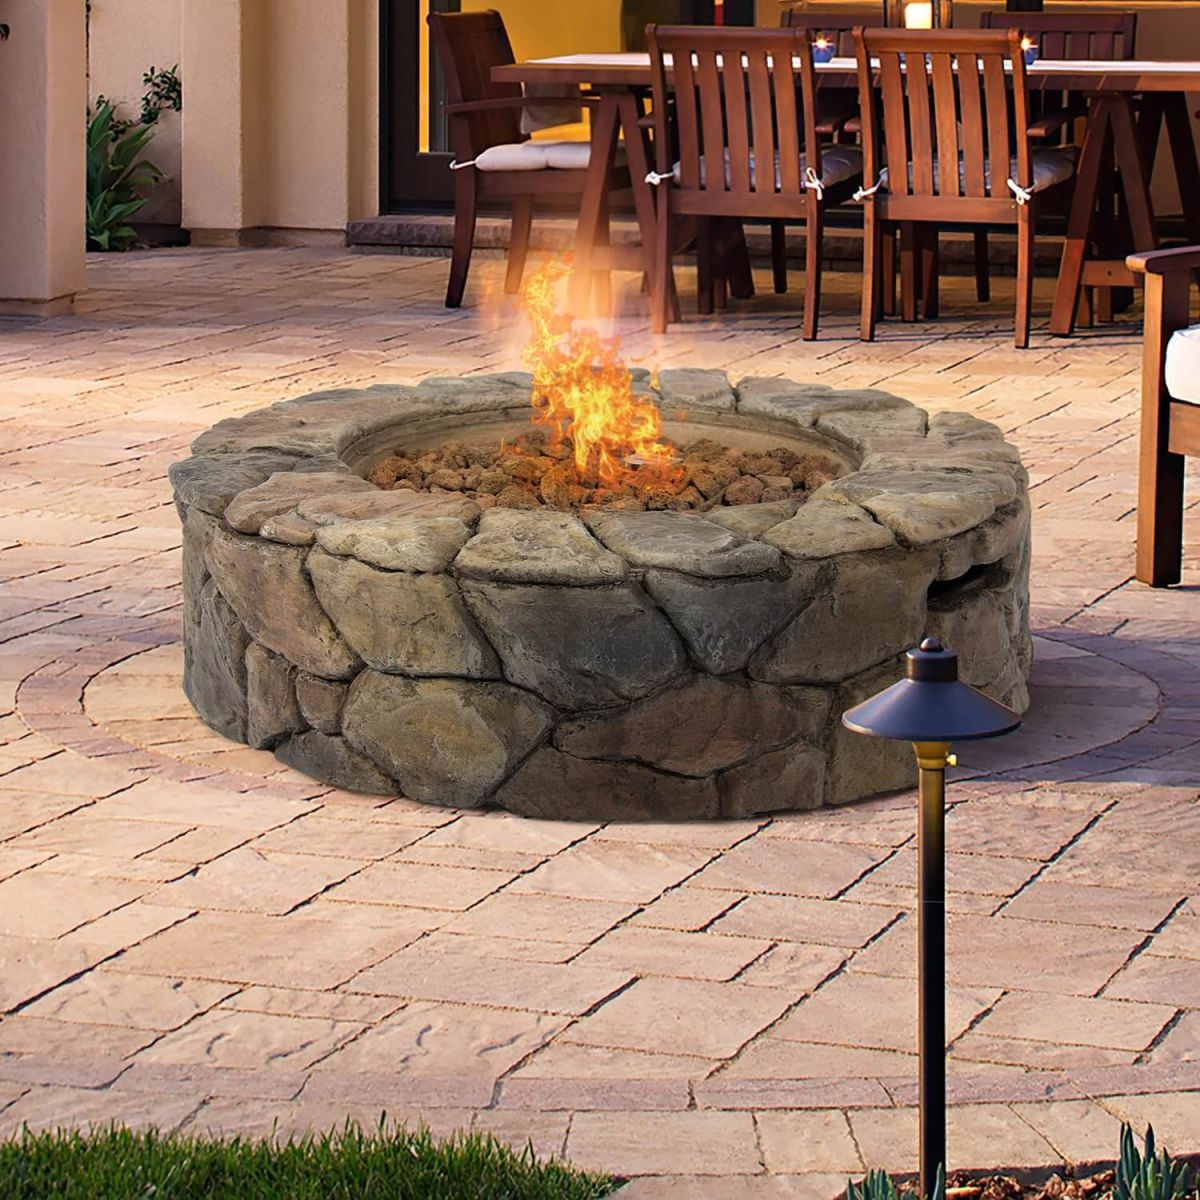 Top 15 Types Of Propane Patio Fire Pits With Table (Buying Guide) with regard to Lovely Outdoor Propane Fire Pit